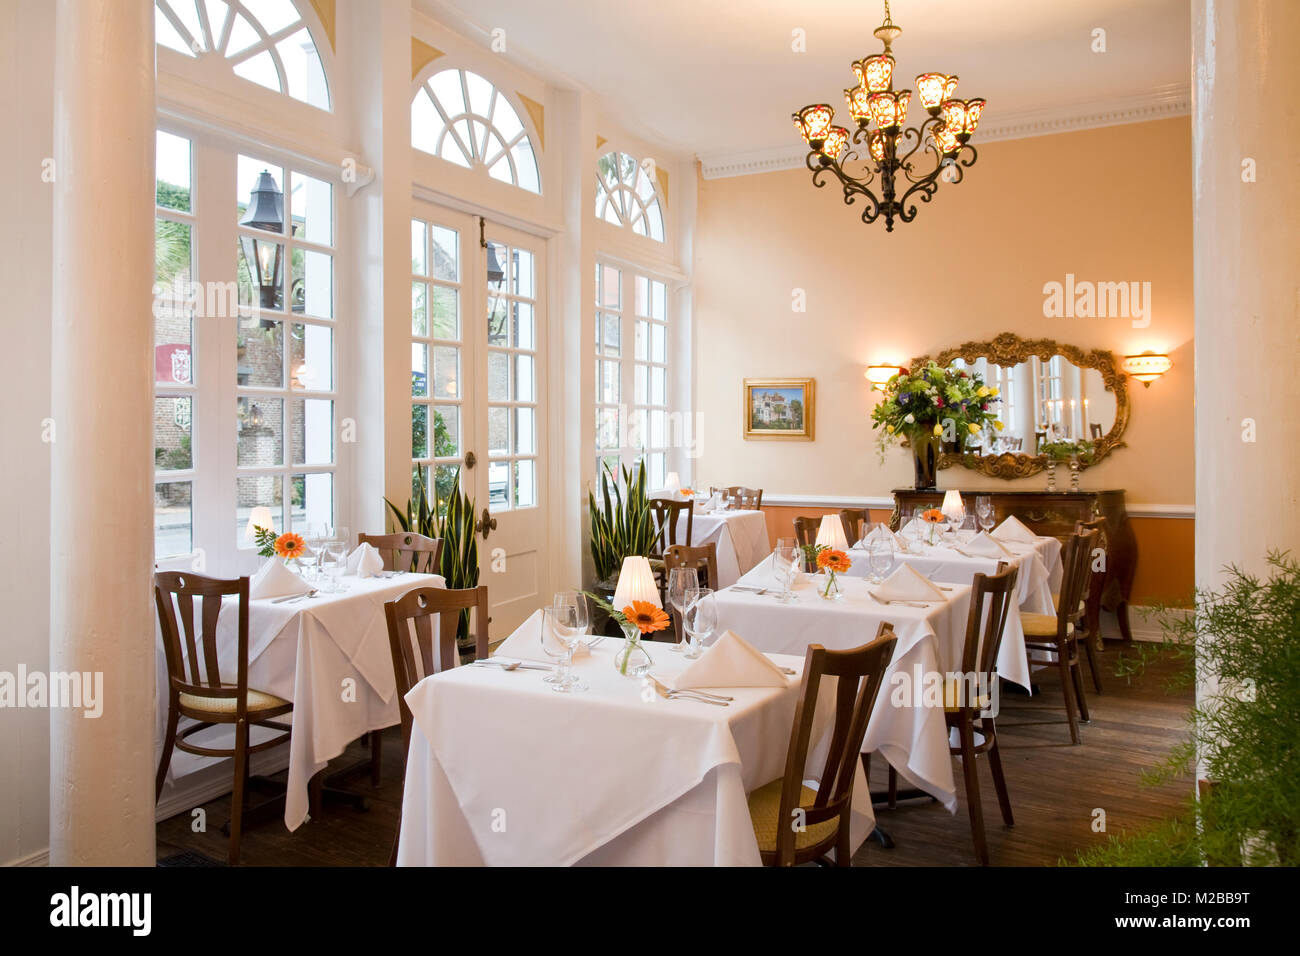 Vendue Inn,Charleston,South Carolina - Stock Image